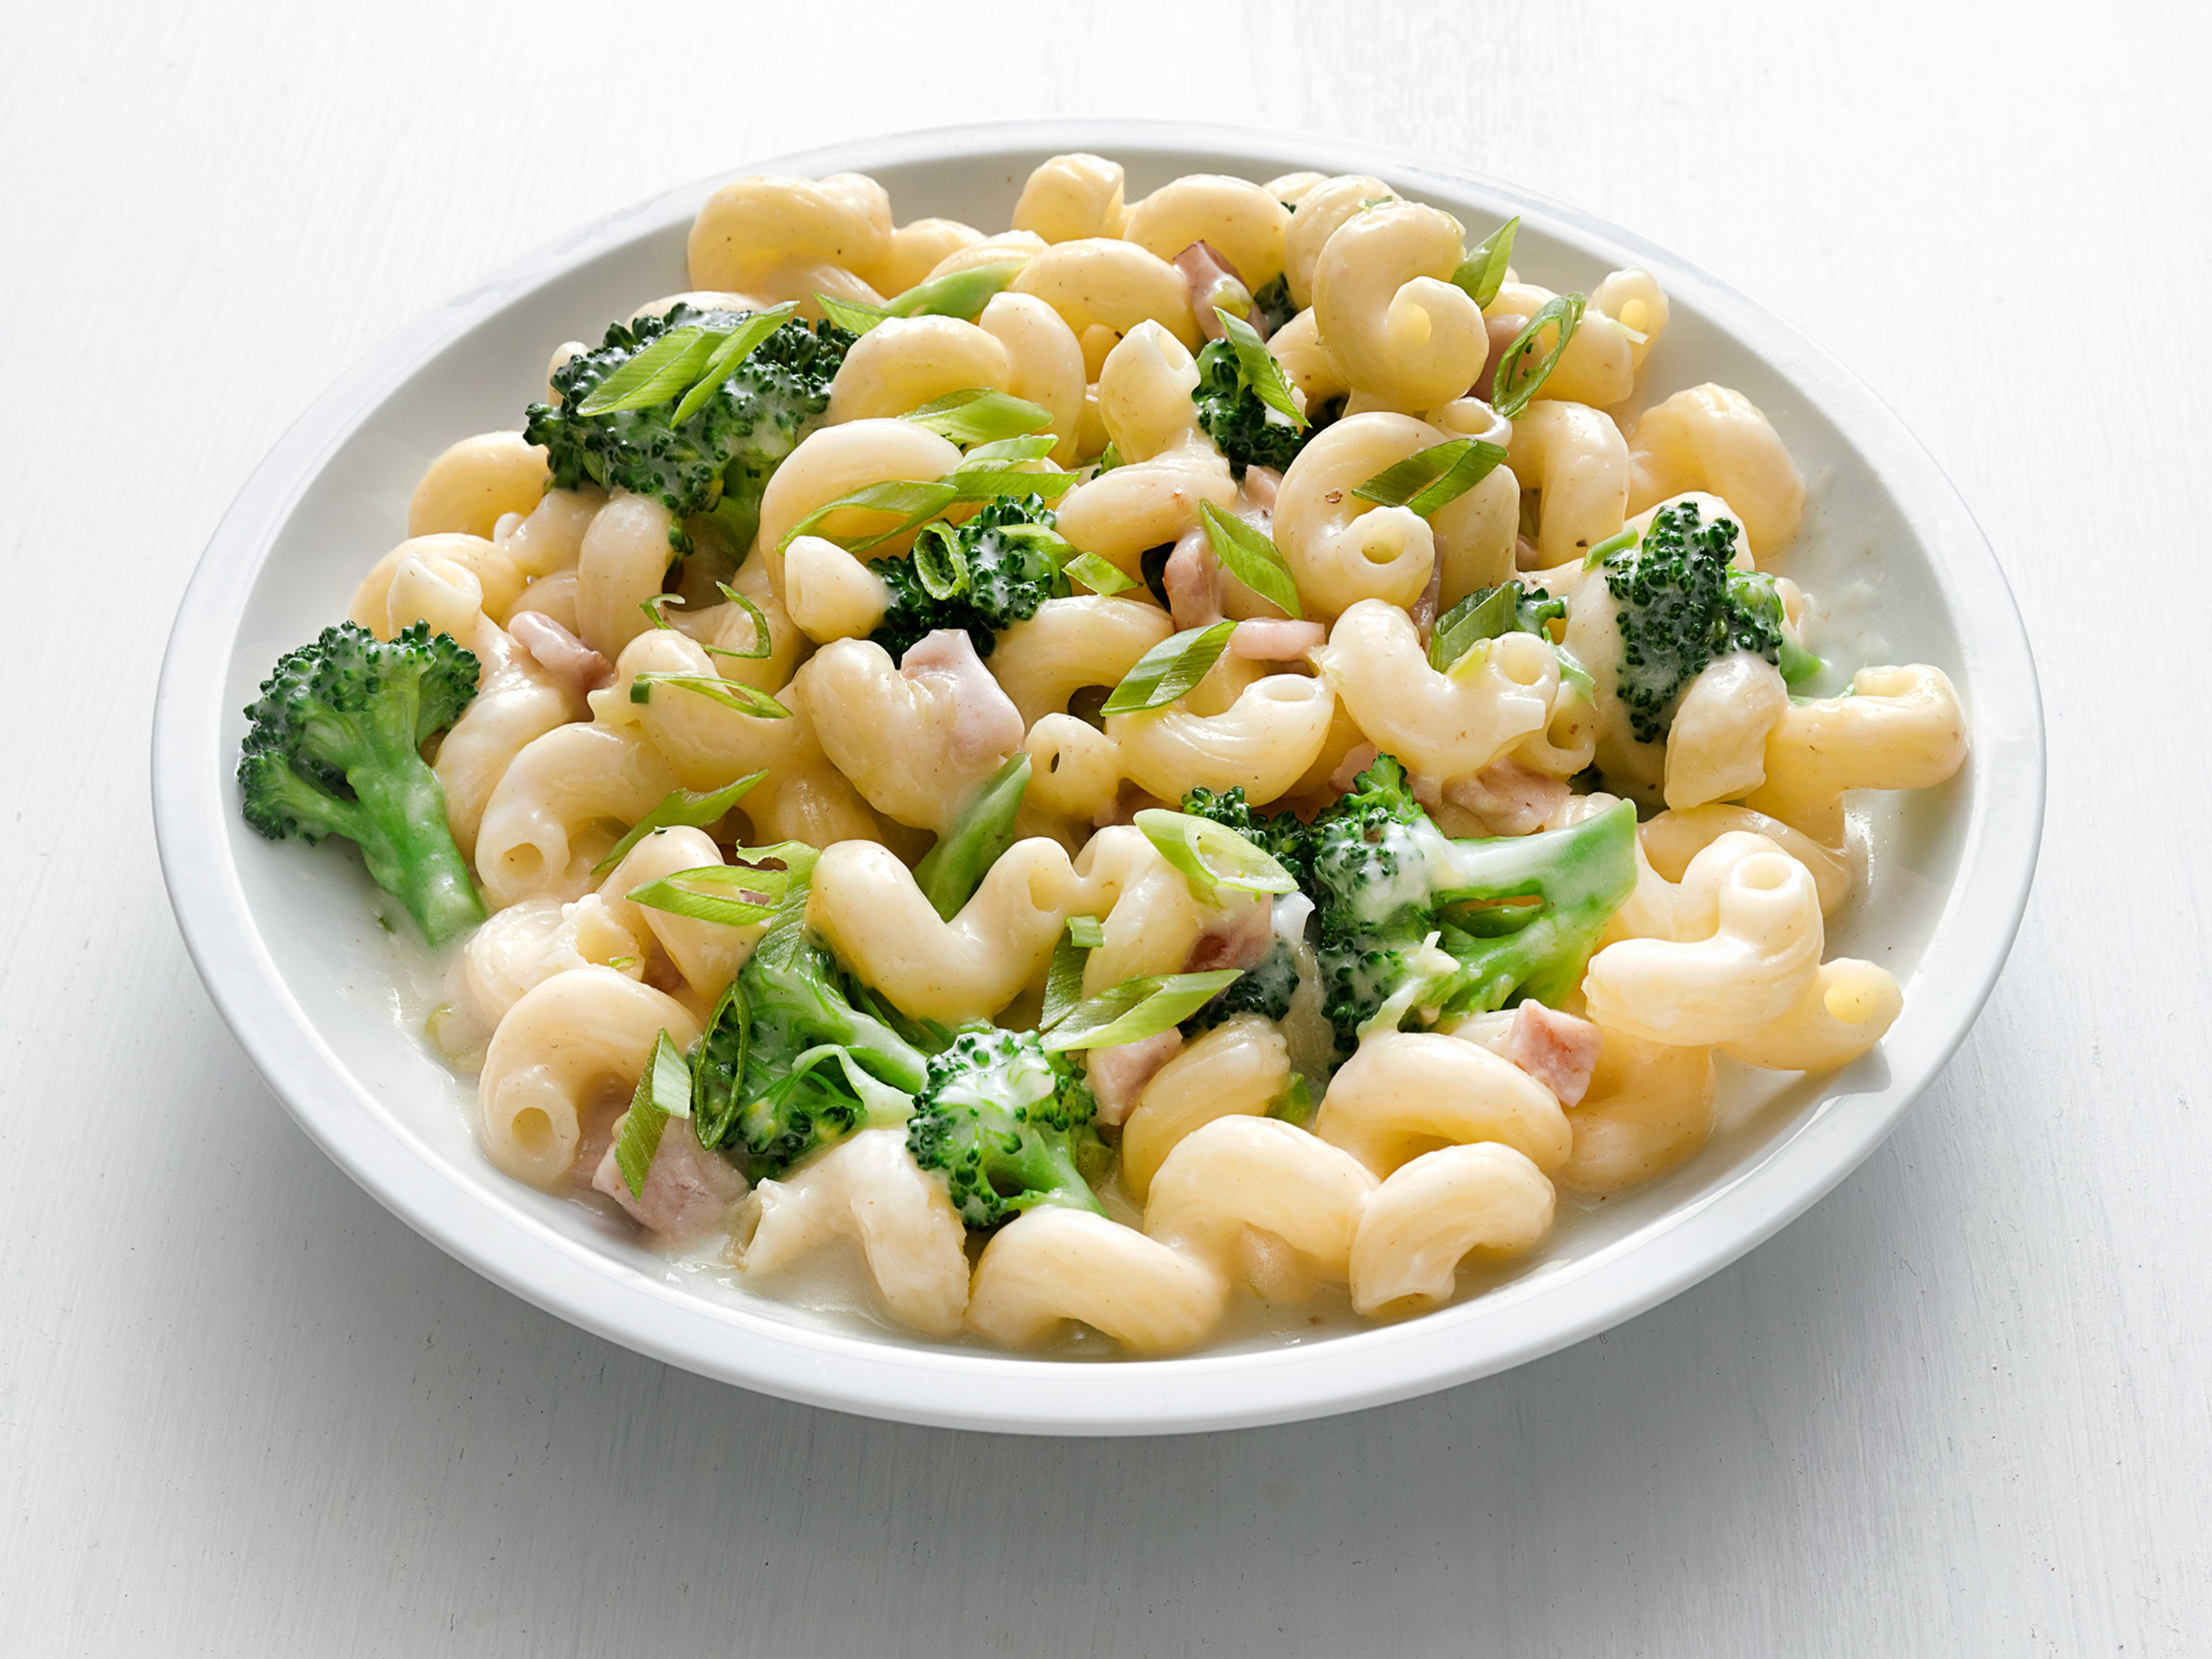 Broccoli And Bacon Mac And Cheese Recipe Food Network Recipes